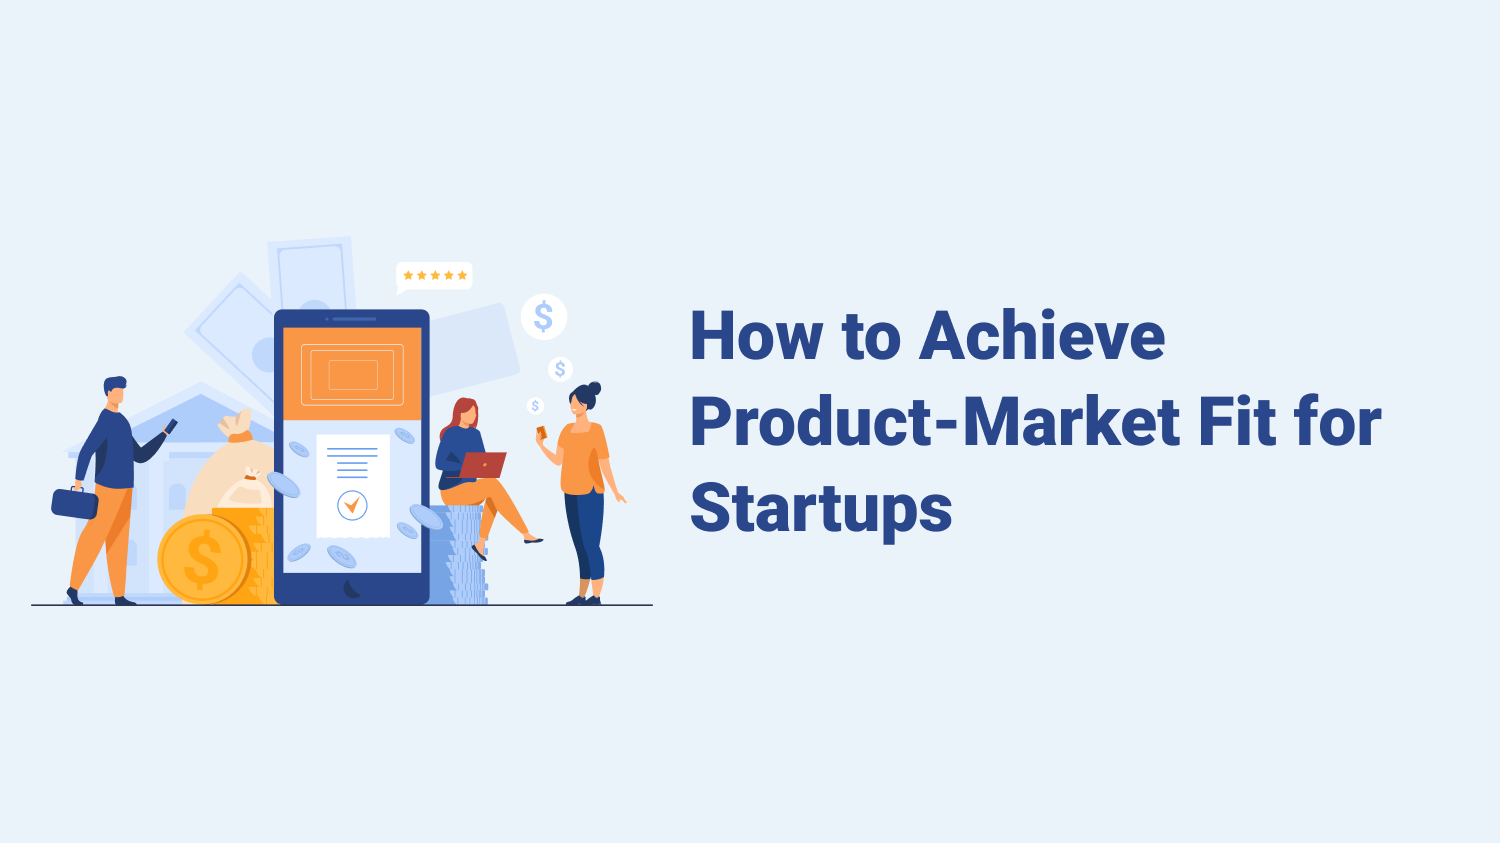 How to Achieve Product-Market Fit for Startups